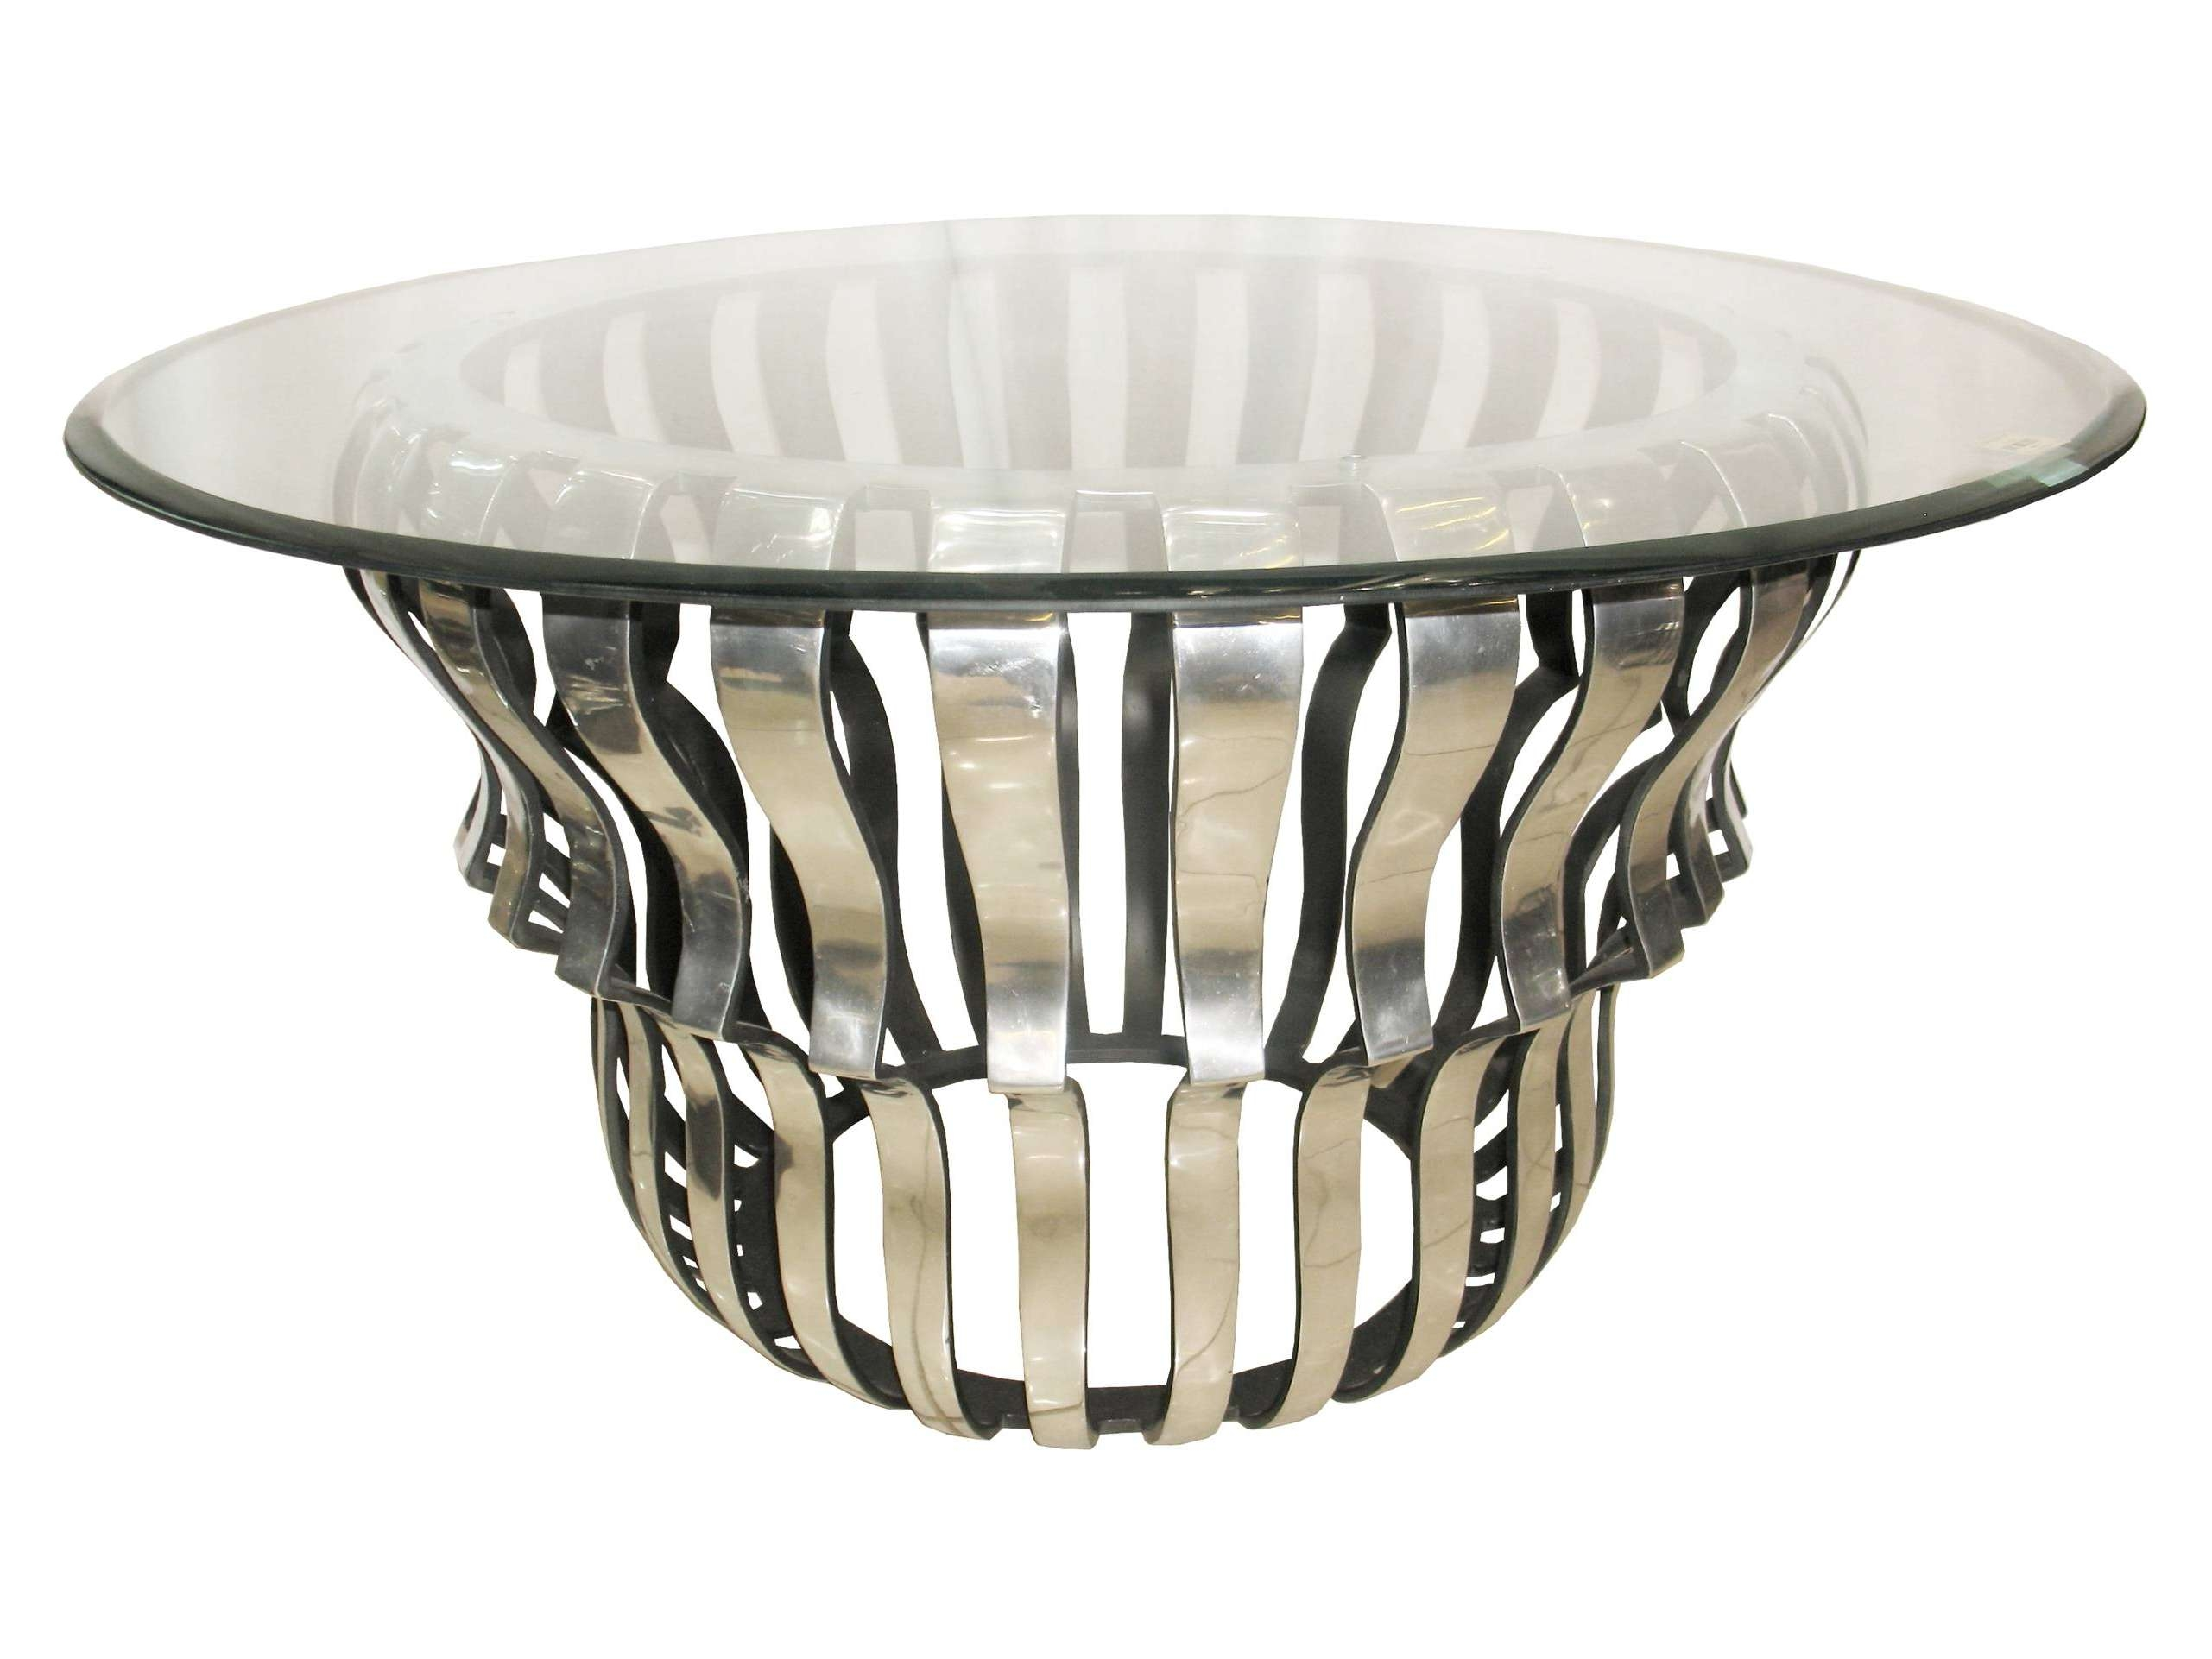 Wowpieces Regarding Most Current Aluminium Coffee Tables (View 15 of 20)